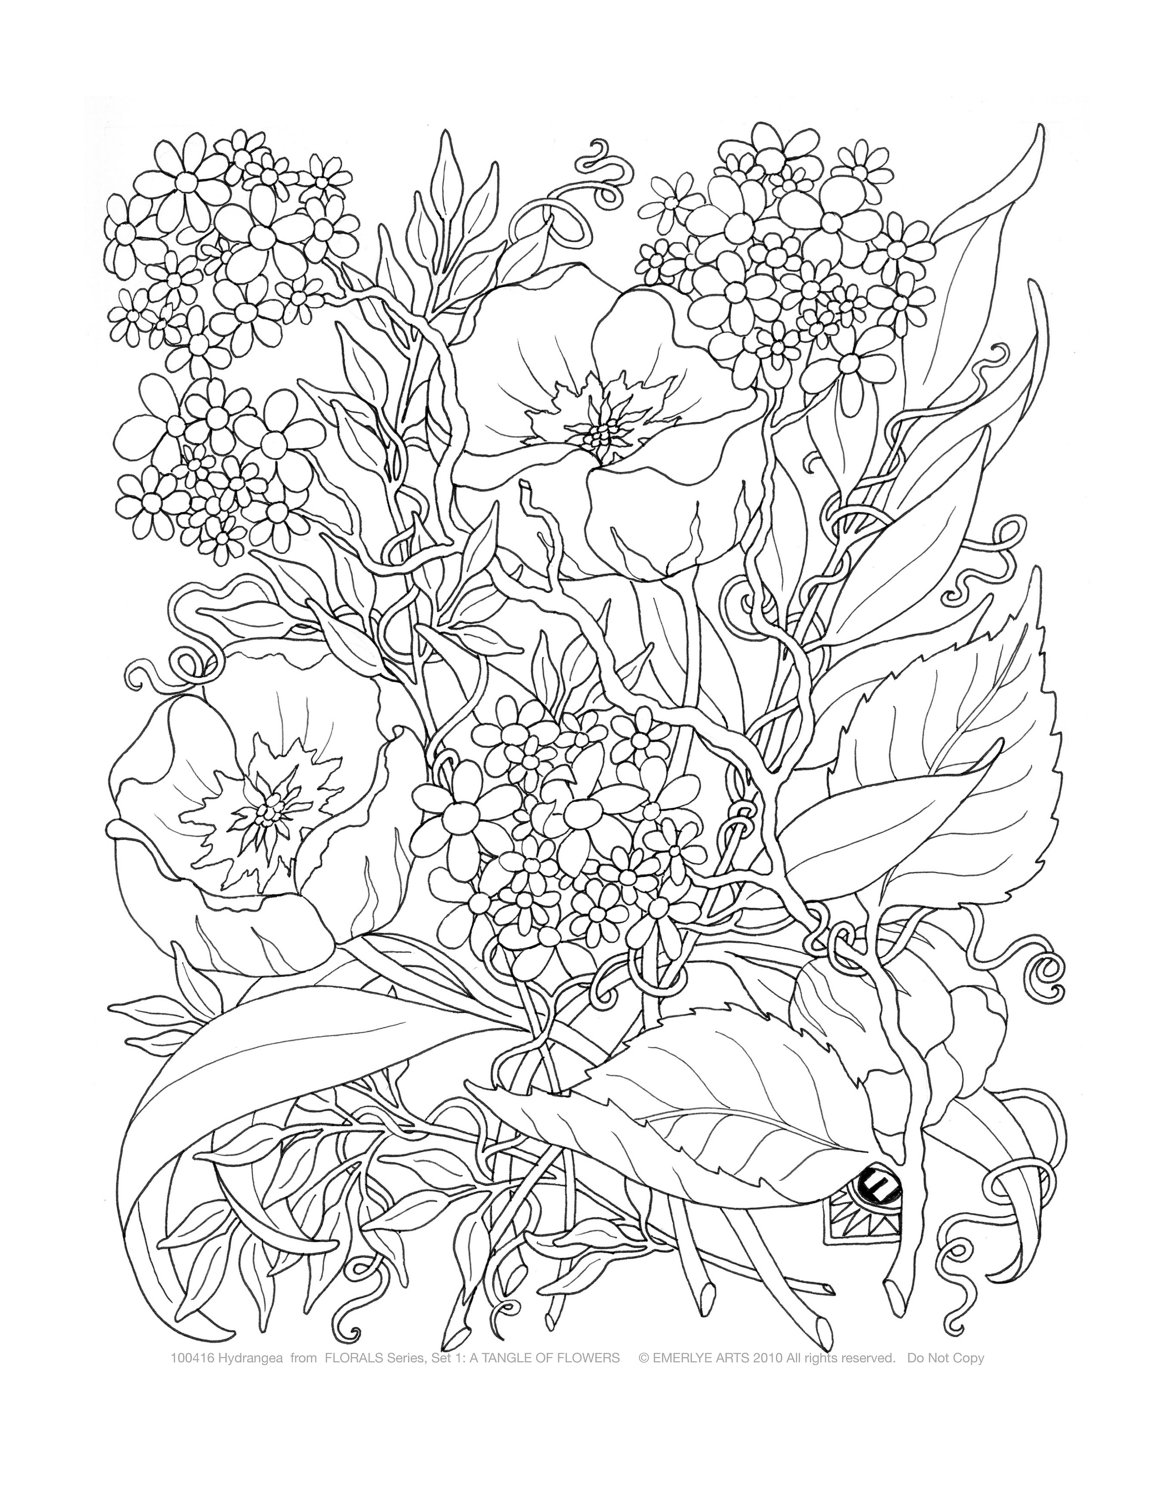 Free Coloring Pages Landscapes Printables At Getdrawings Free Download